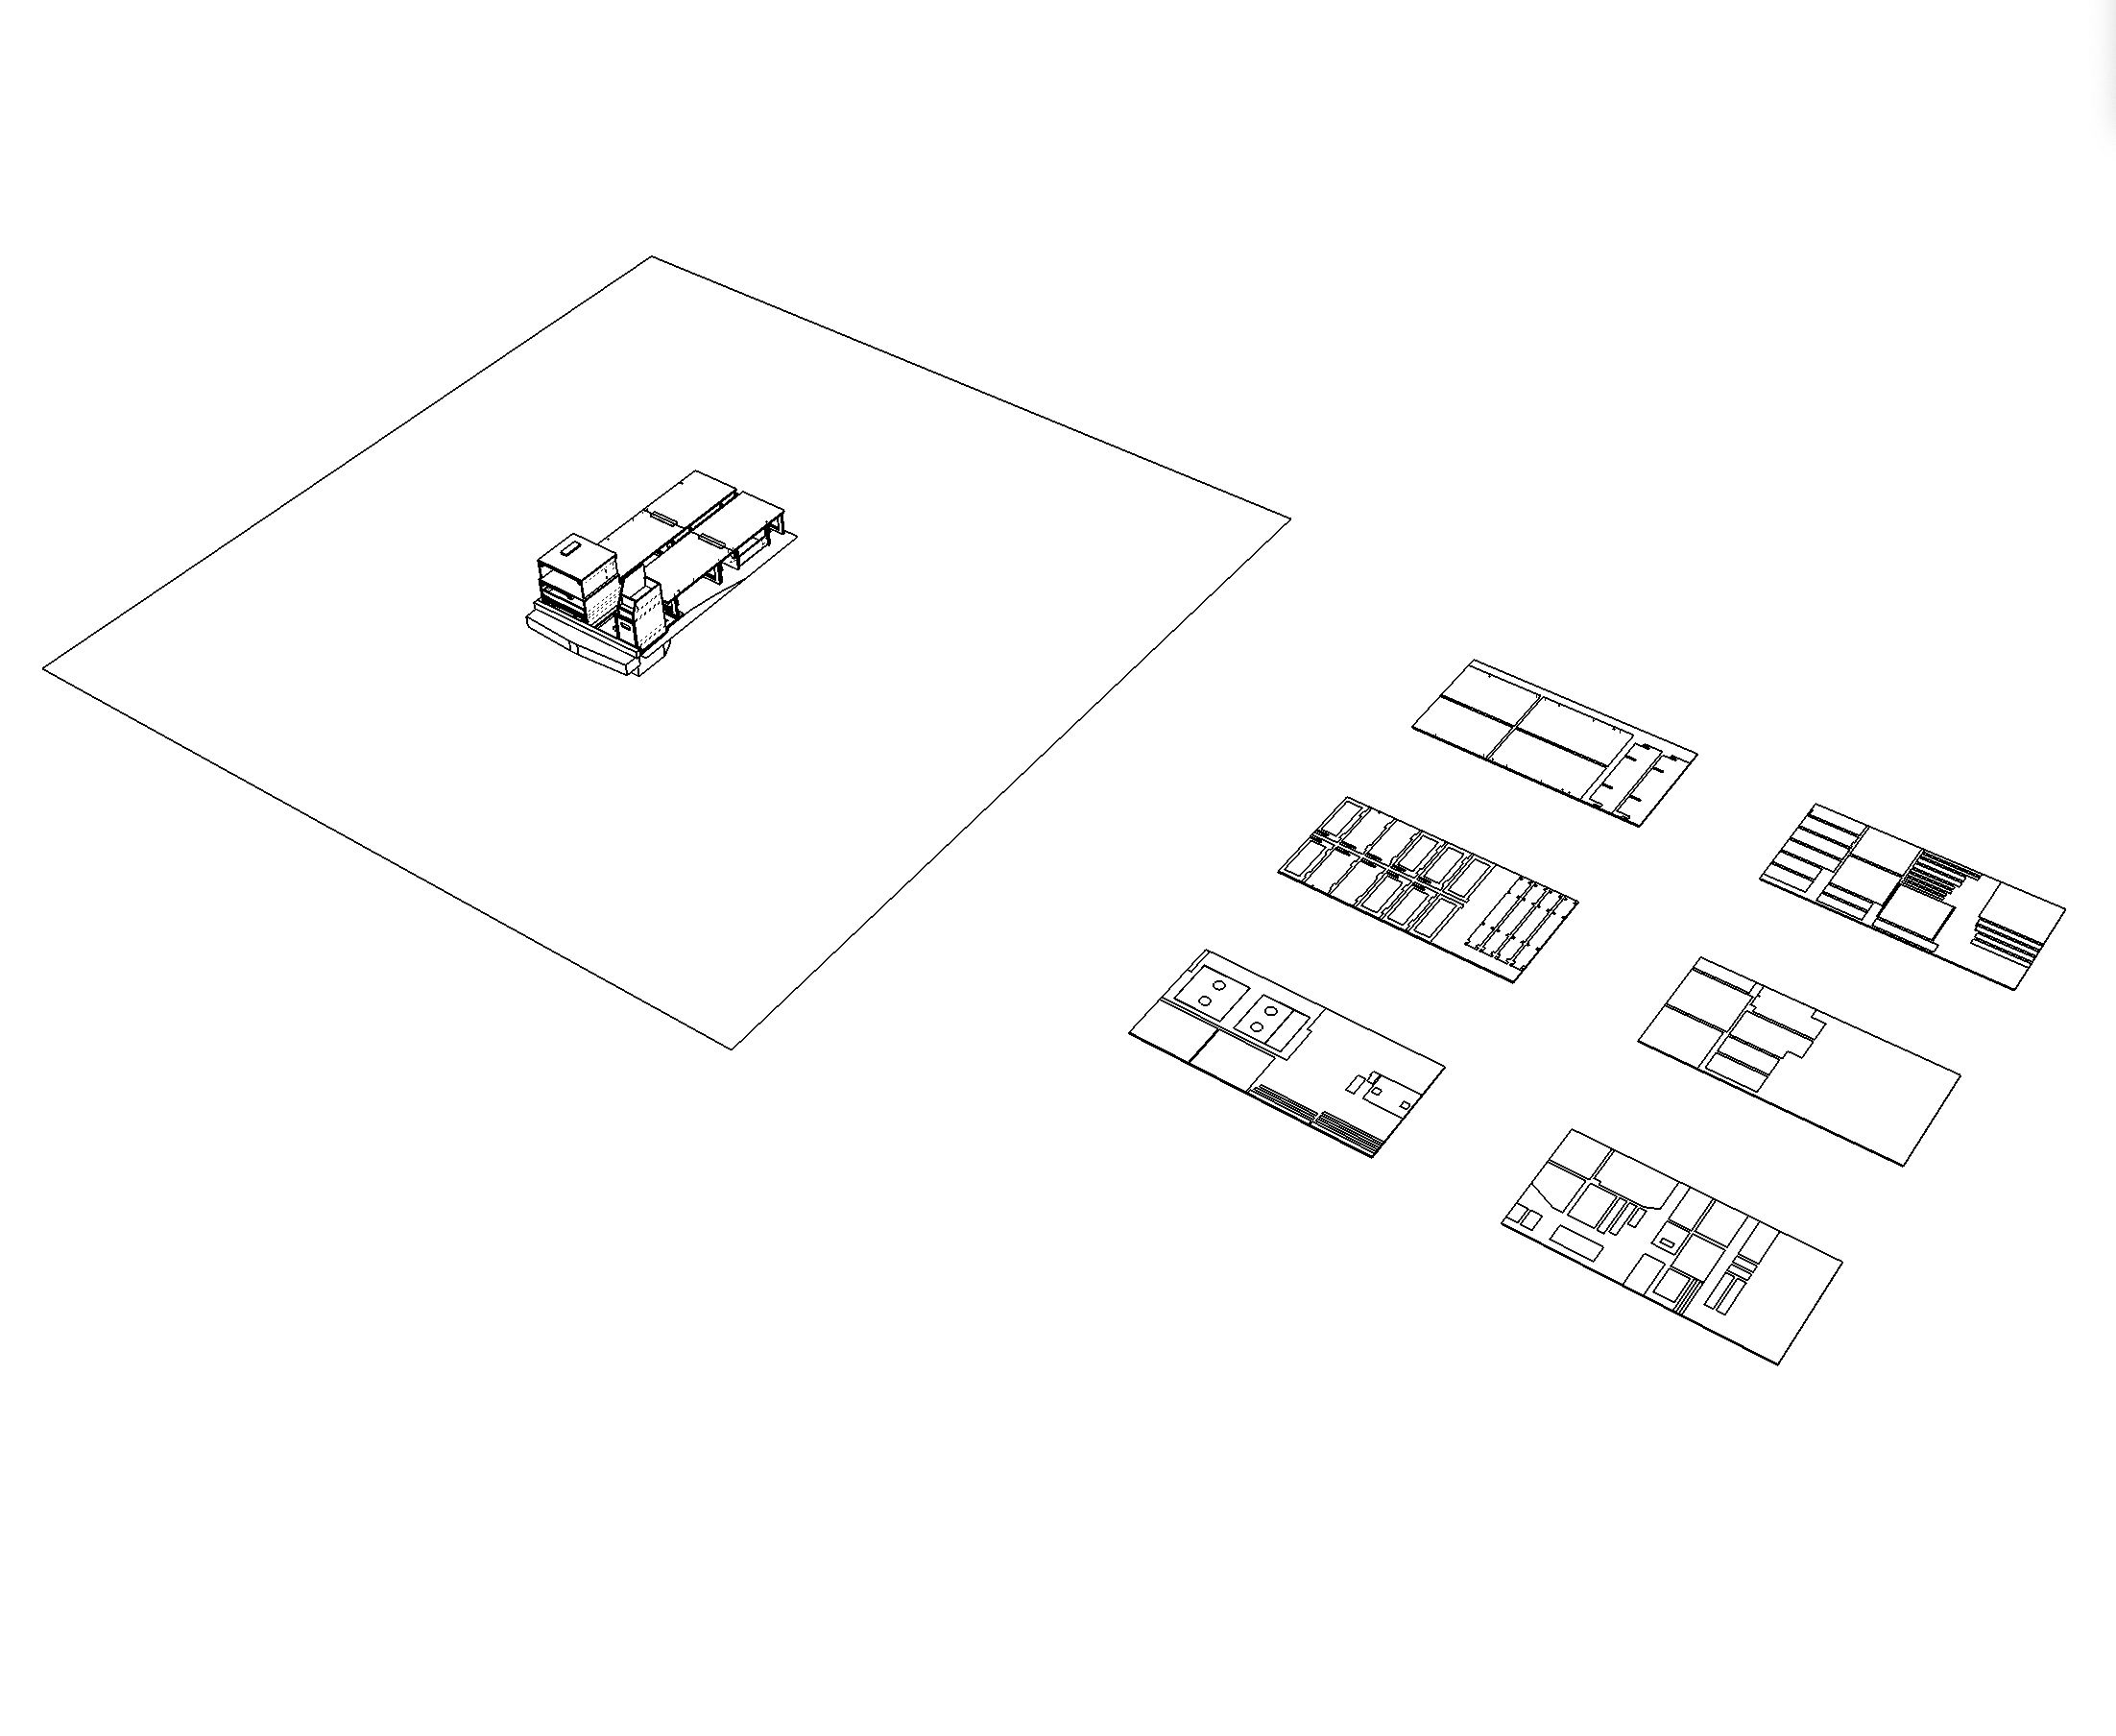 Sketchup File Cover Photo.png